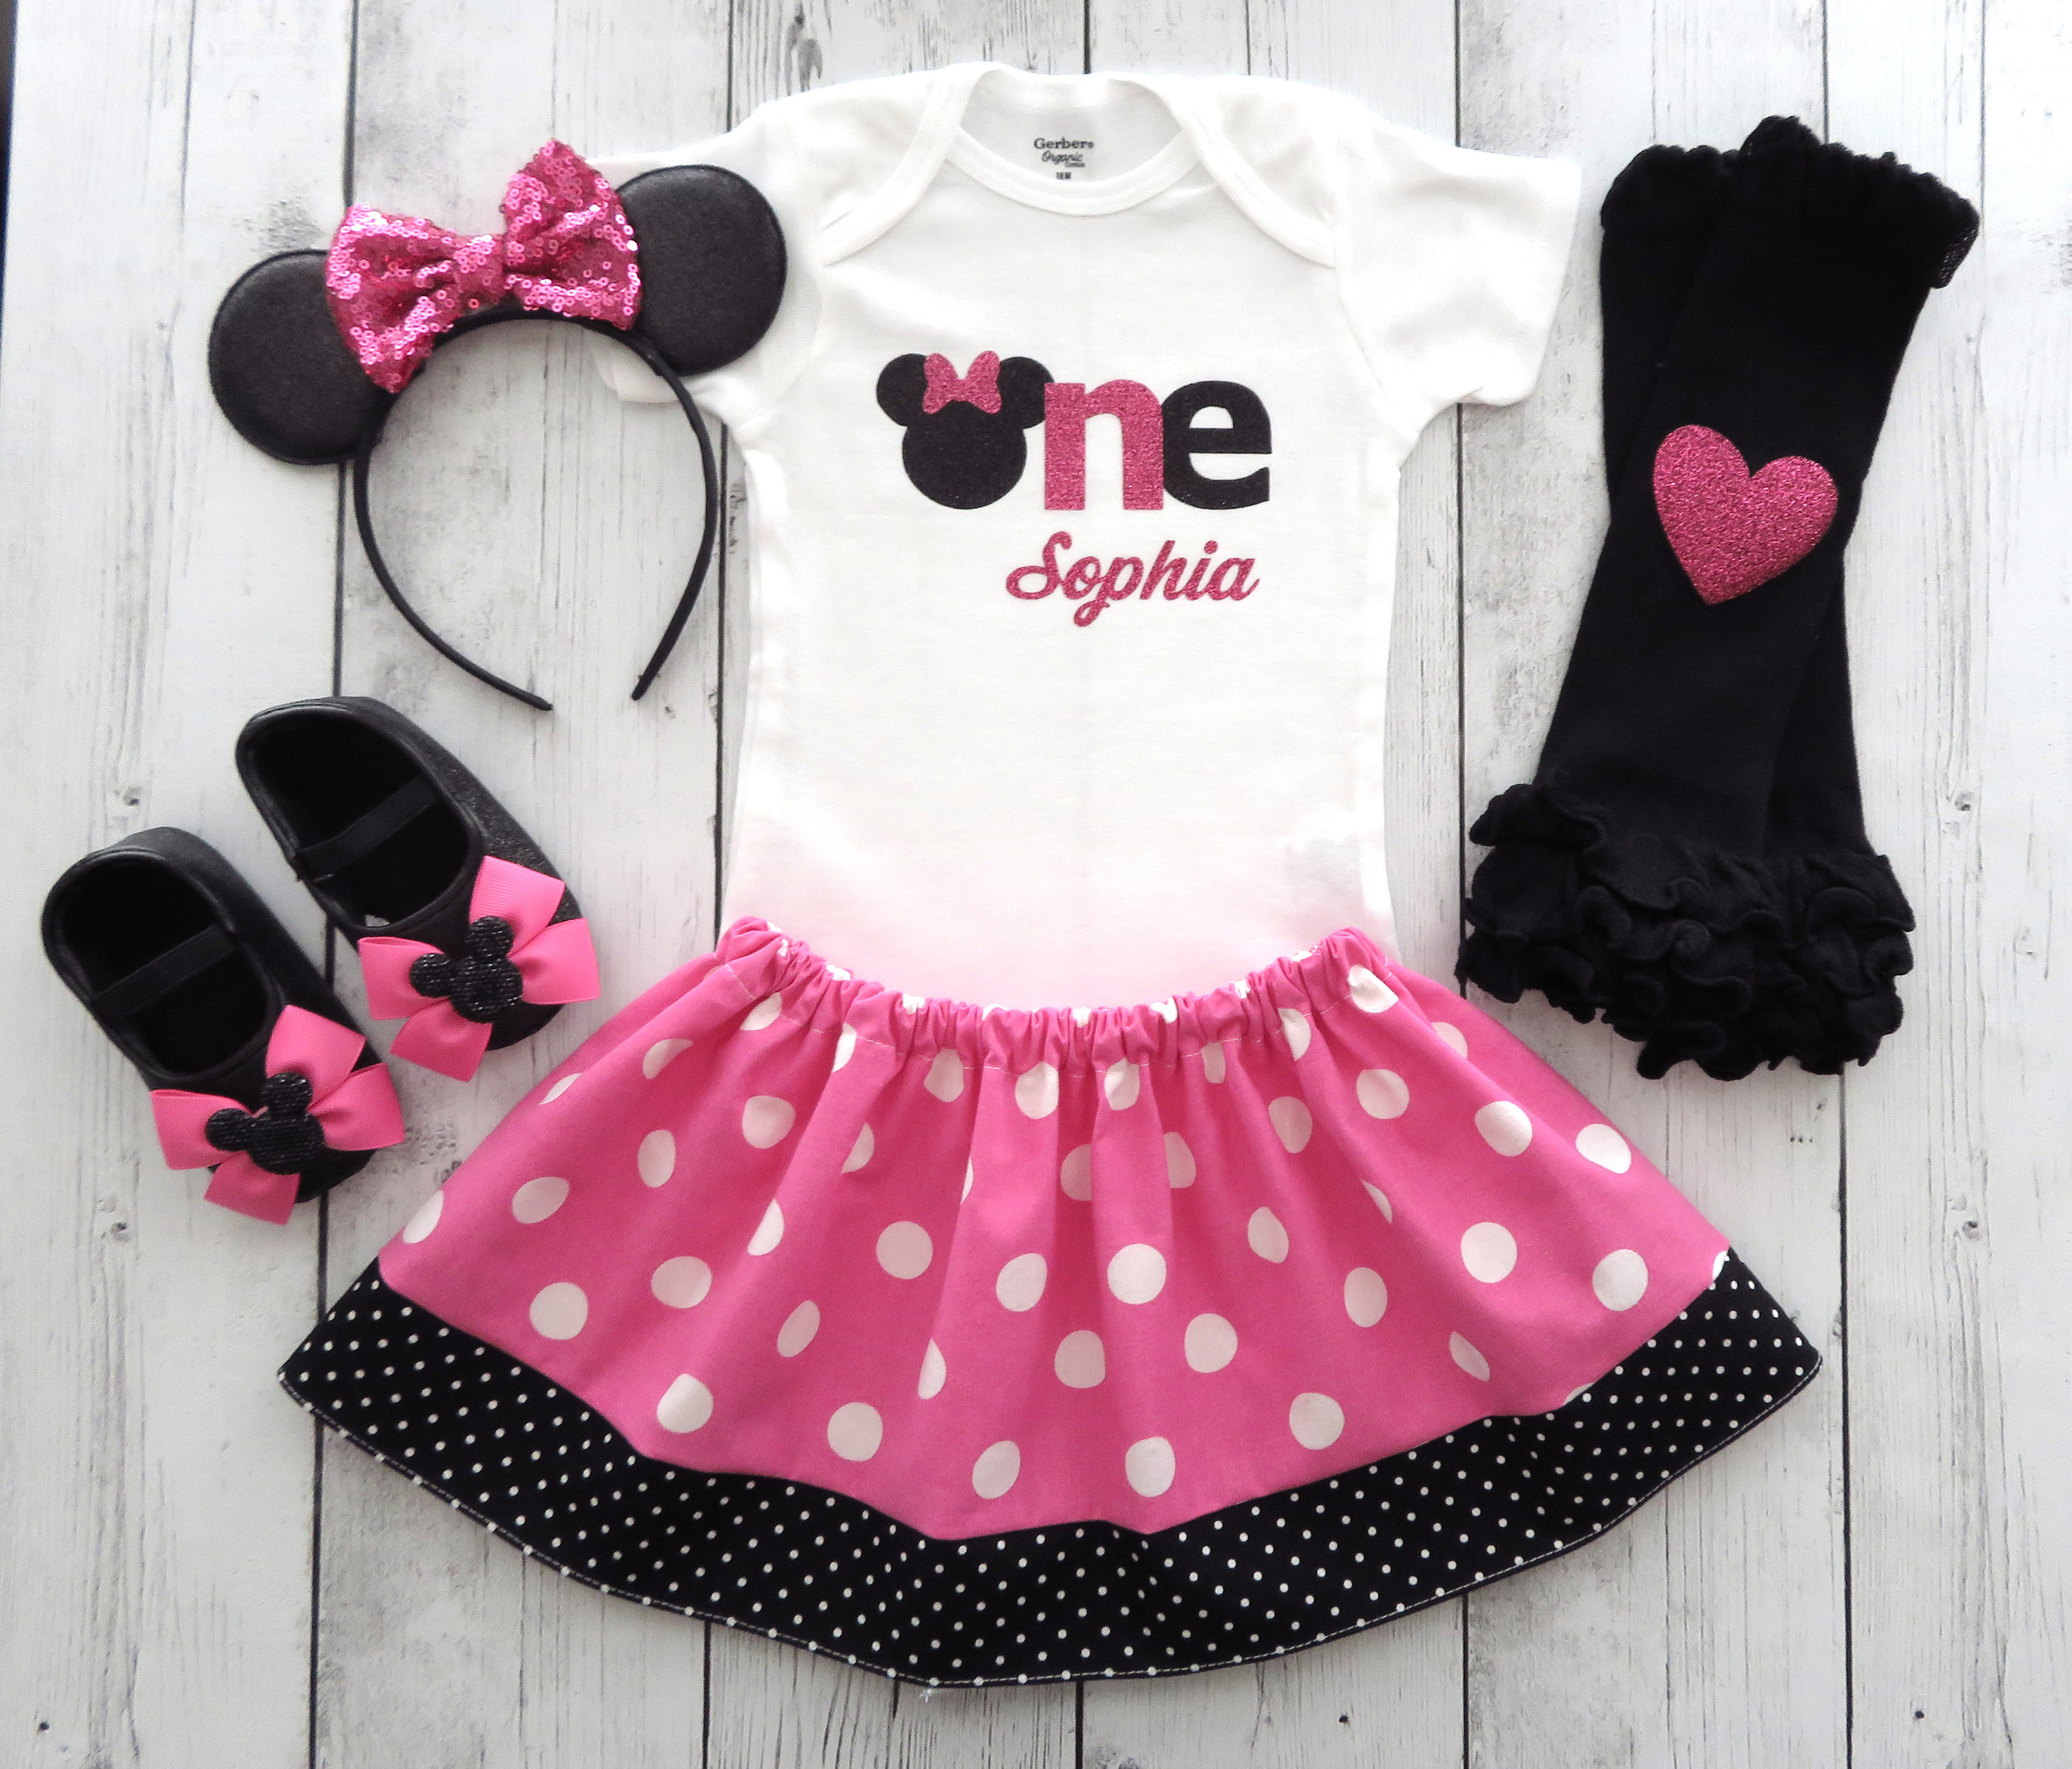 Minnie Mouse First Birthday Outfit in pink polka dots with Minnie Ears and minnie shoes - 1st bday outfit girl, minnie mouse first birthday